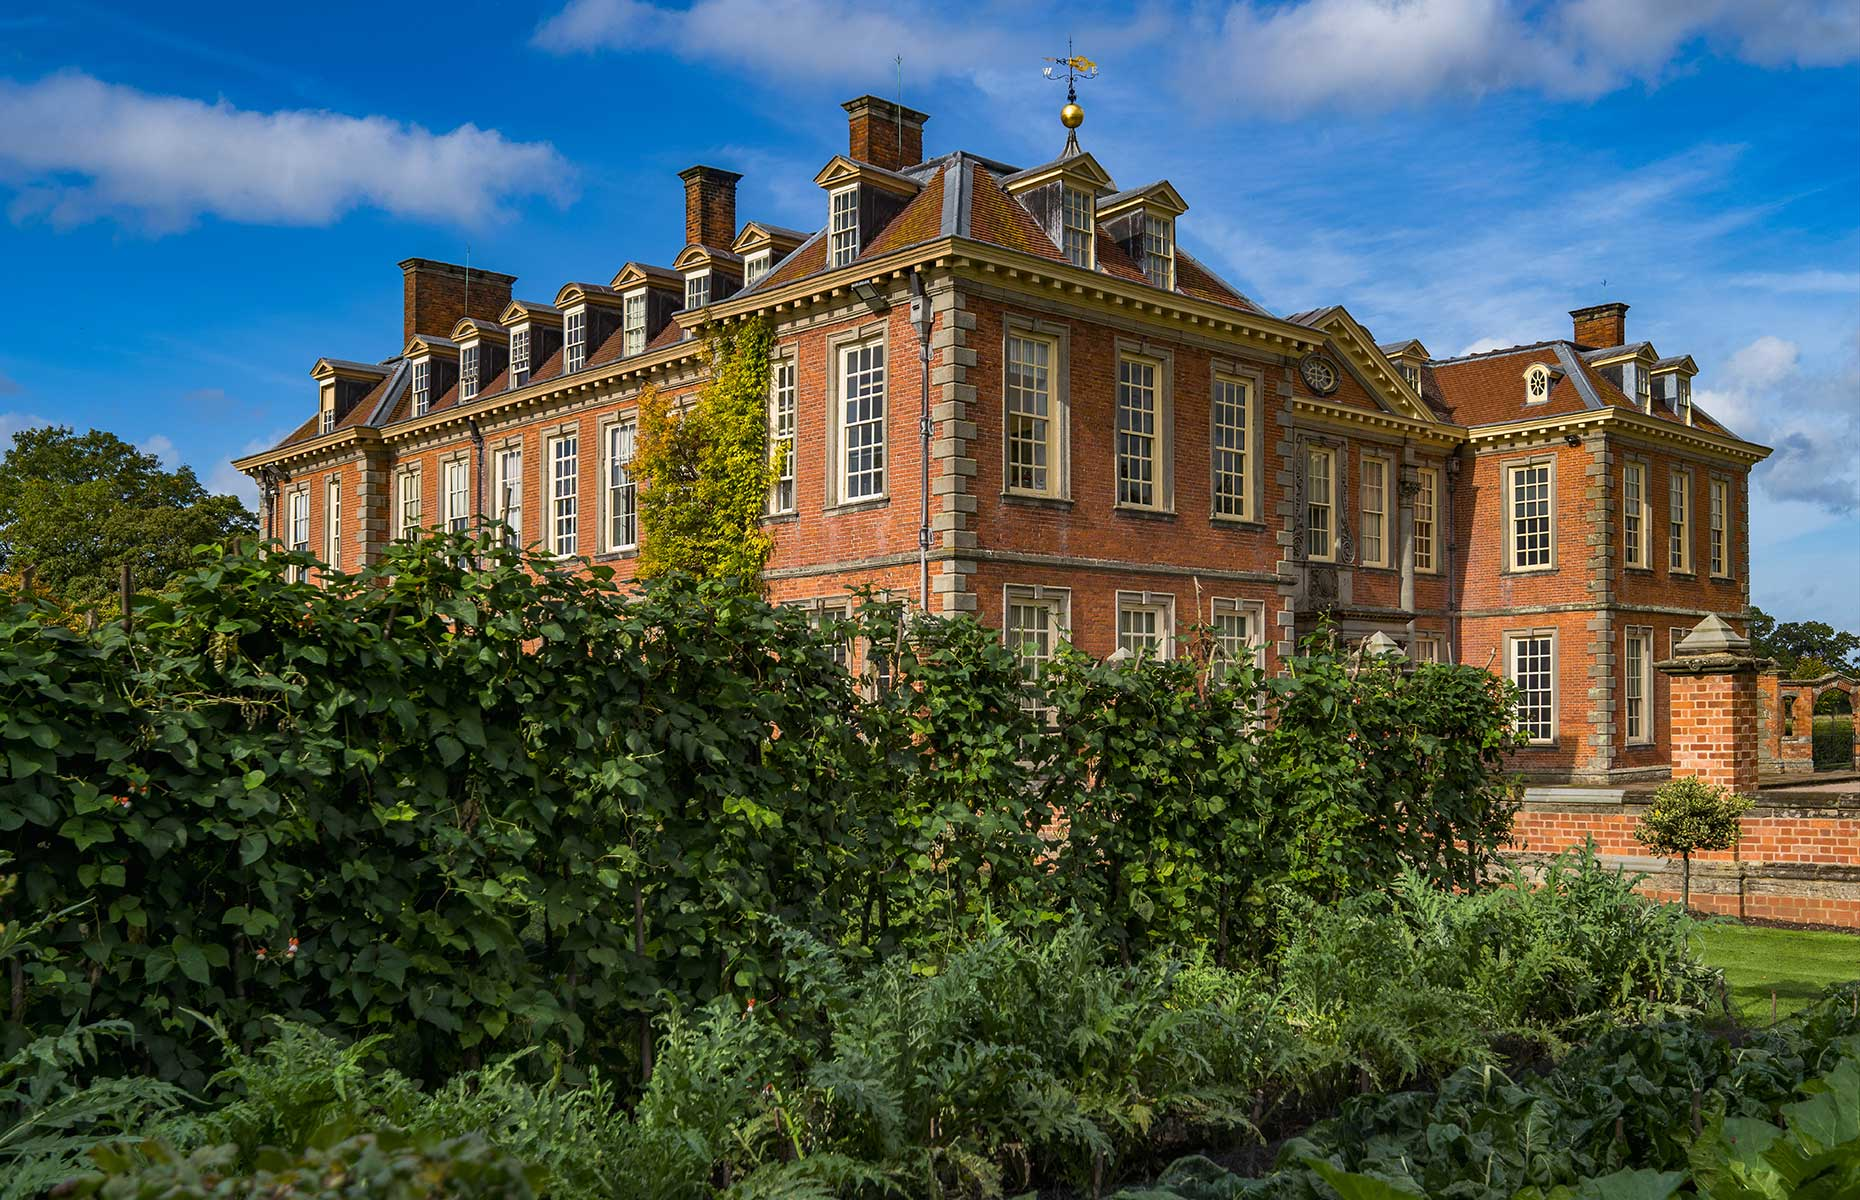 Hanbury Hall (Image: David Hughes/Shutterstock)